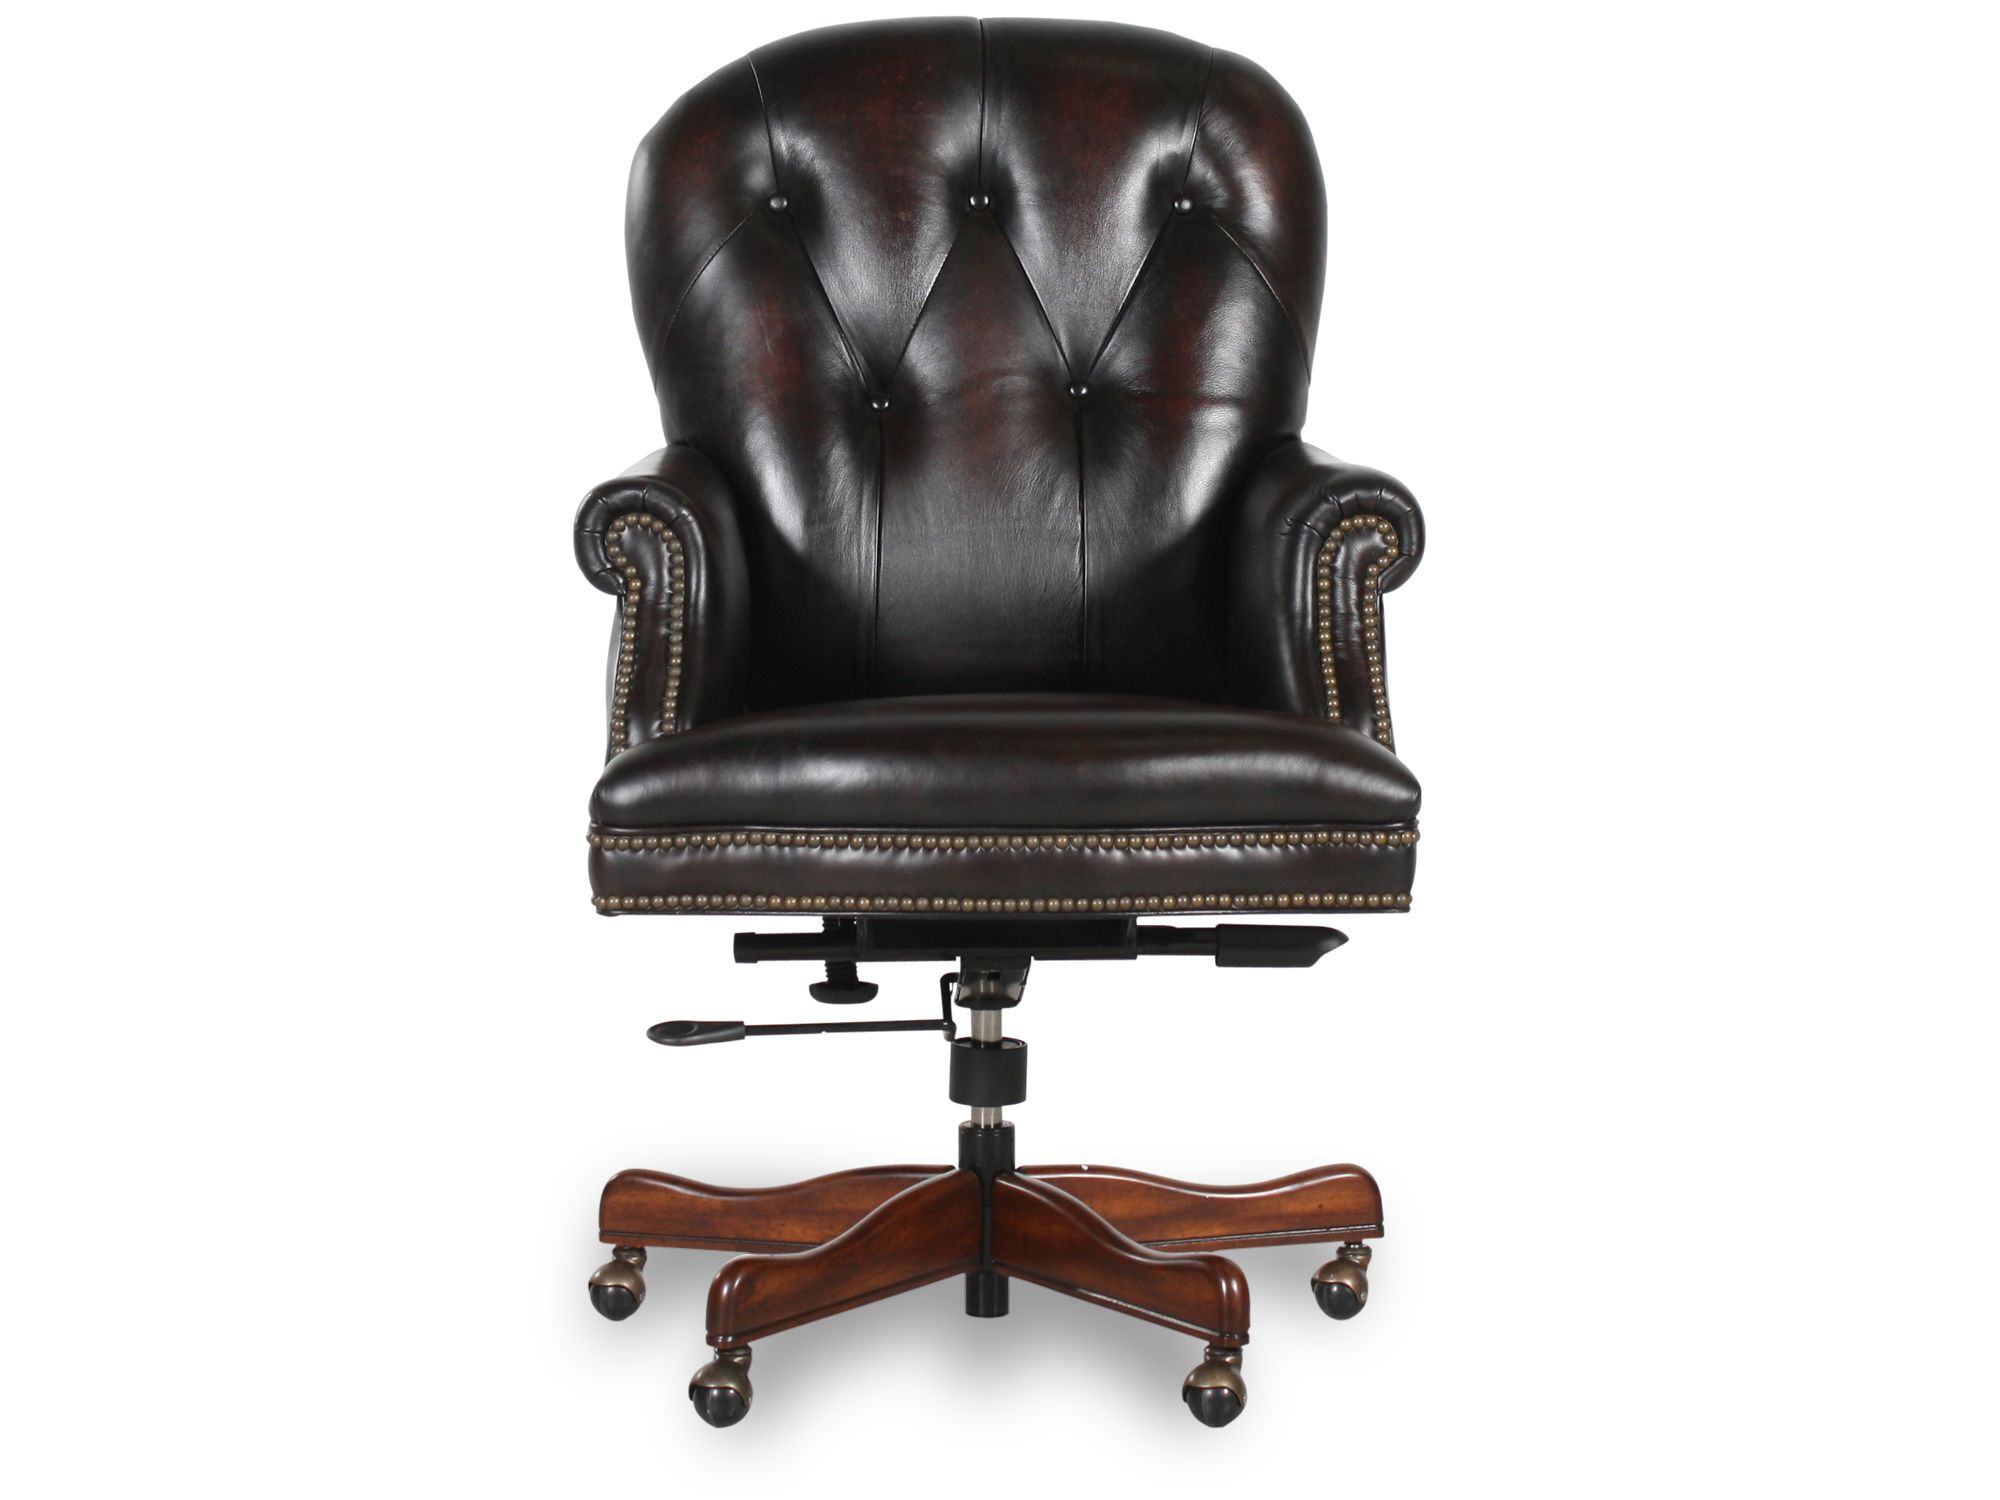 leather button tufted executive swivel tilt chair in dark. Black Bedroom Furniture Sets. Home Design Ideas